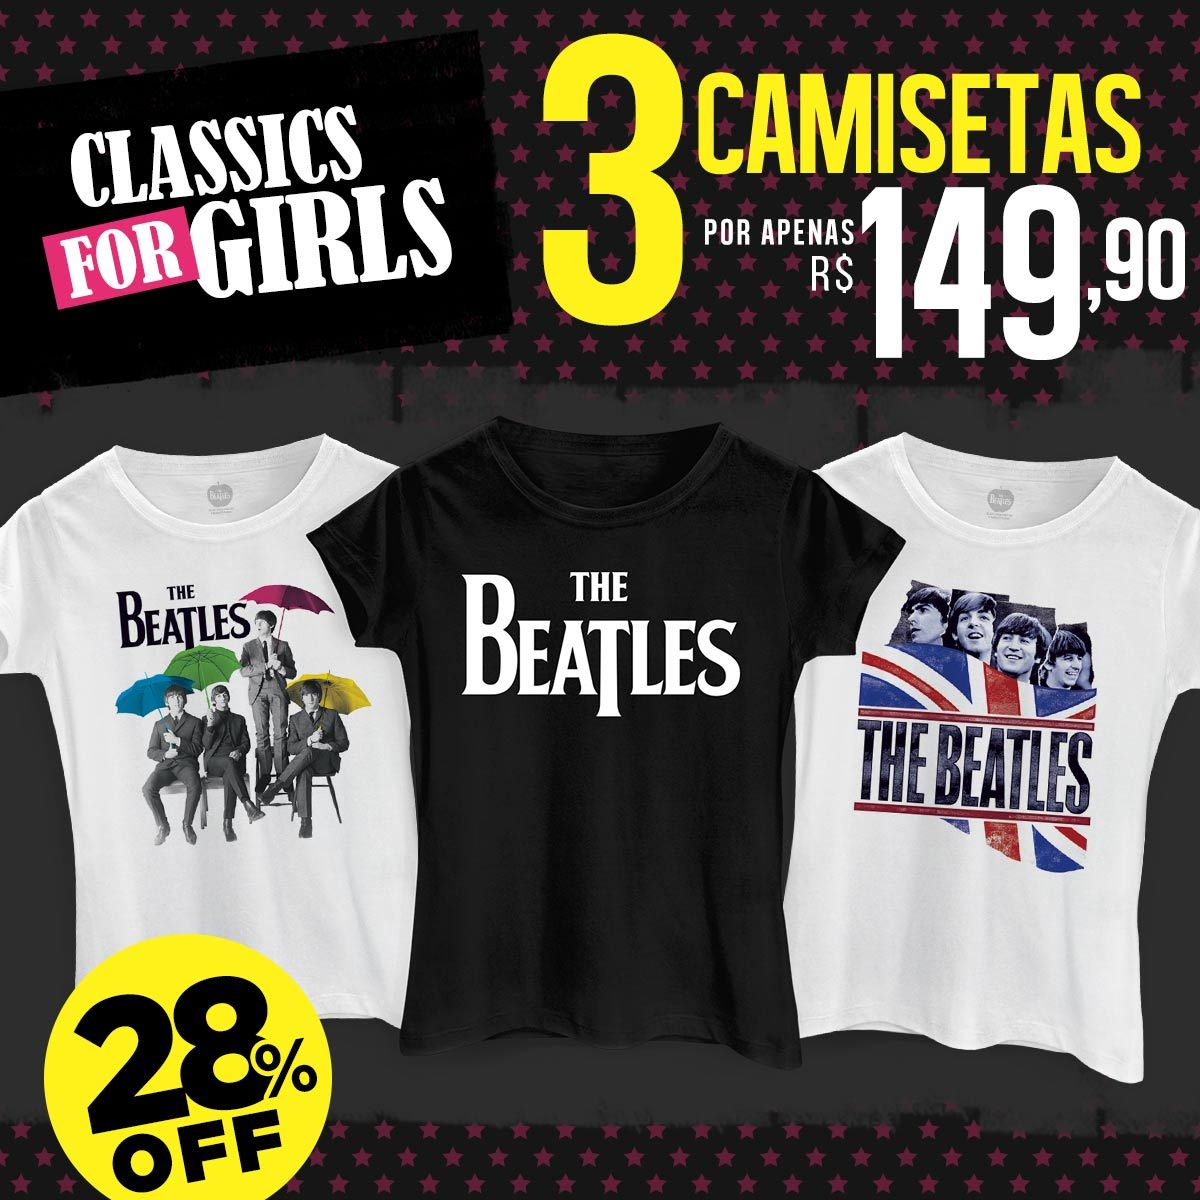 Combo Classics for Girls!